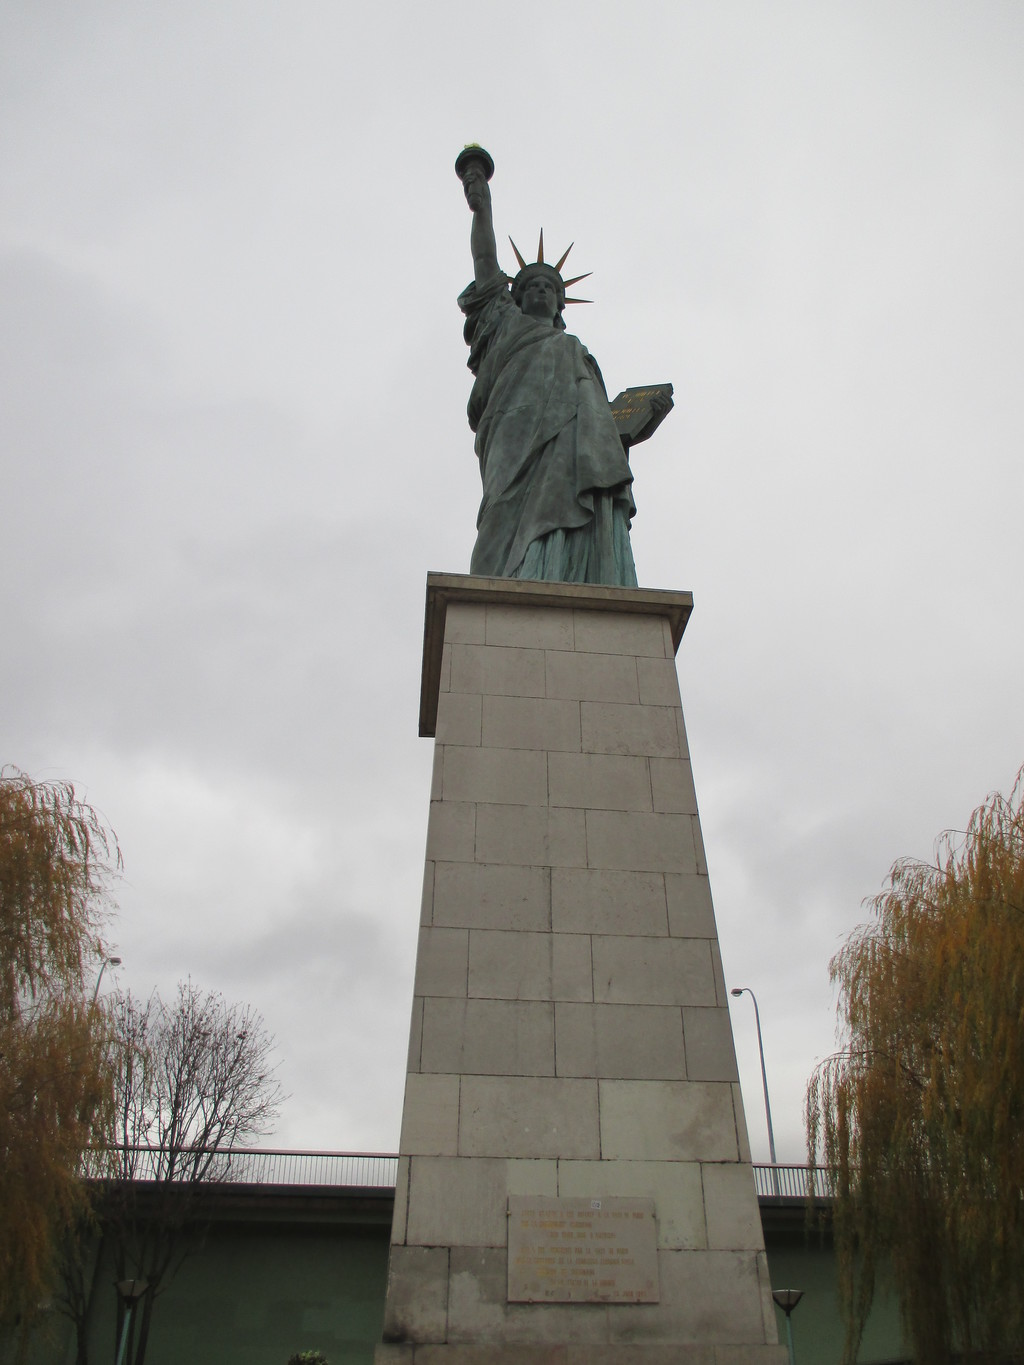 The Parisian Statue of Liberty